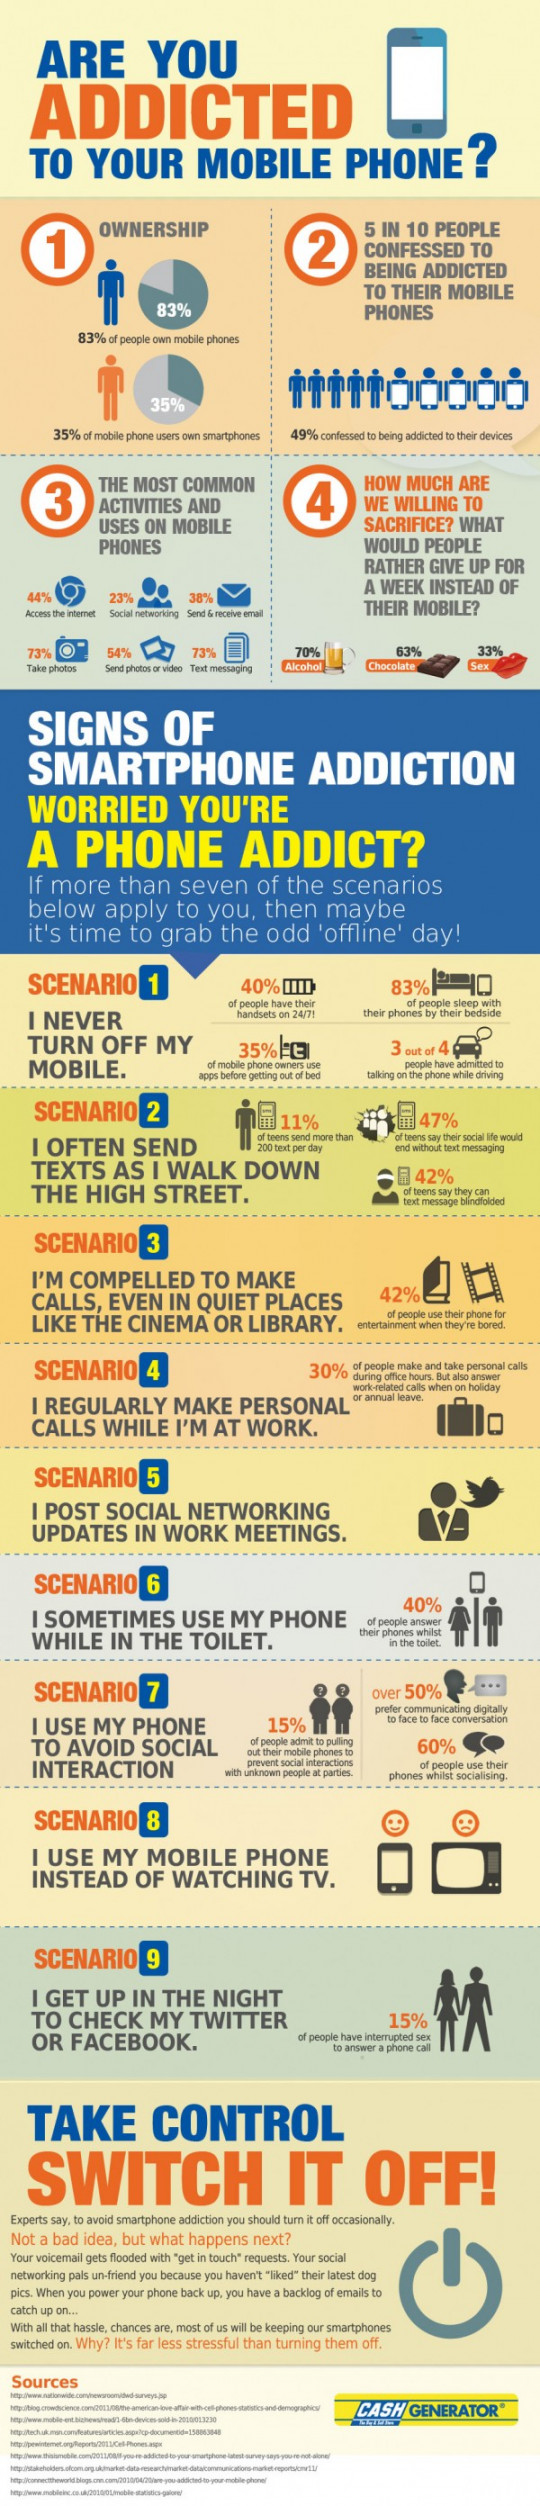 Are You Addicted to Your Mobile Phone?